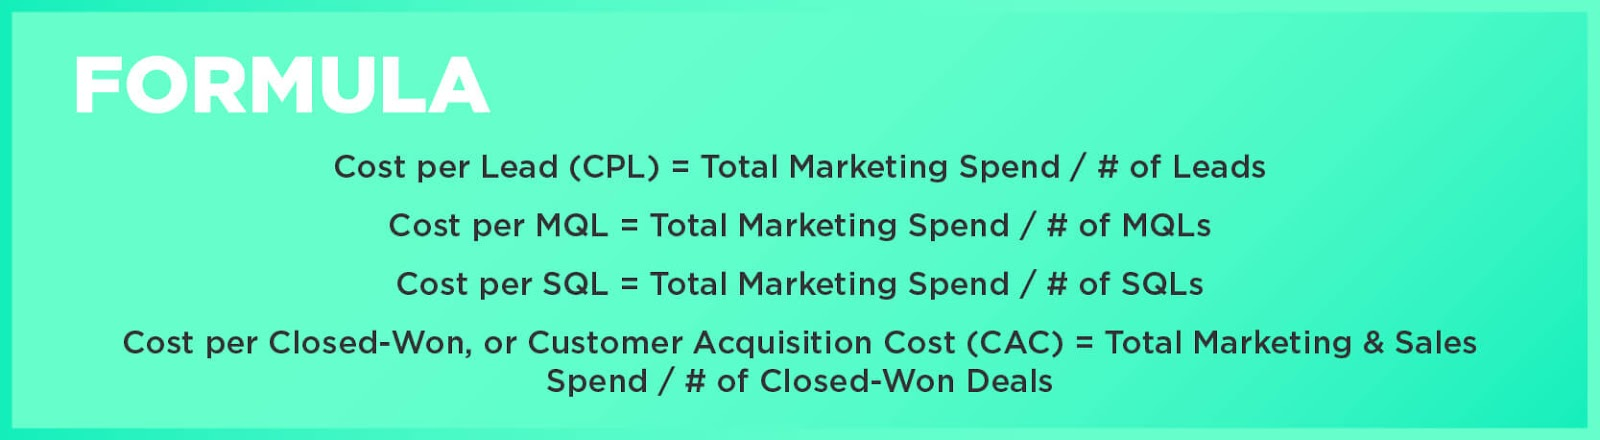 Formula: Cost per Lead (CPL) = Total Marketing Spend / # of LeadsCost per MQL = Total Marketing Spend / # of MQLsCost per SQL = Total Marketing Spend / # of SQLsCost per Closed-Won, or Customer Acquisition Cost (CAC) = Total Marketing & Sales Spend / # of Closed-Won Deals